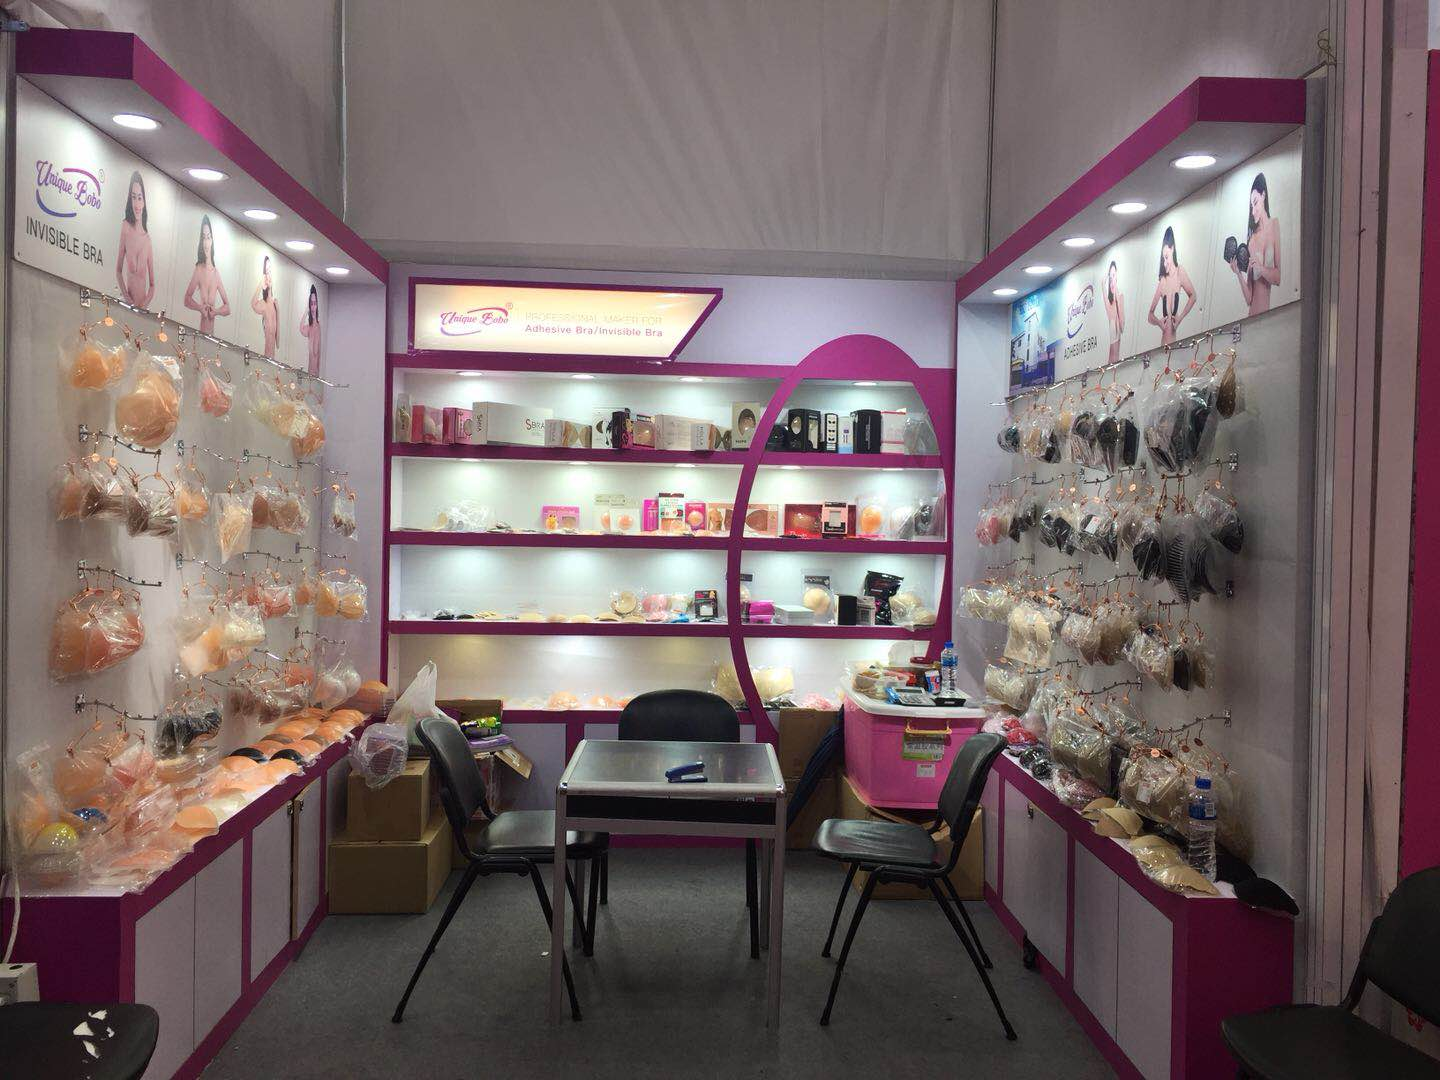 Uniquebobo-Blogpost-no125 Canton Fair For Underwear And Bra